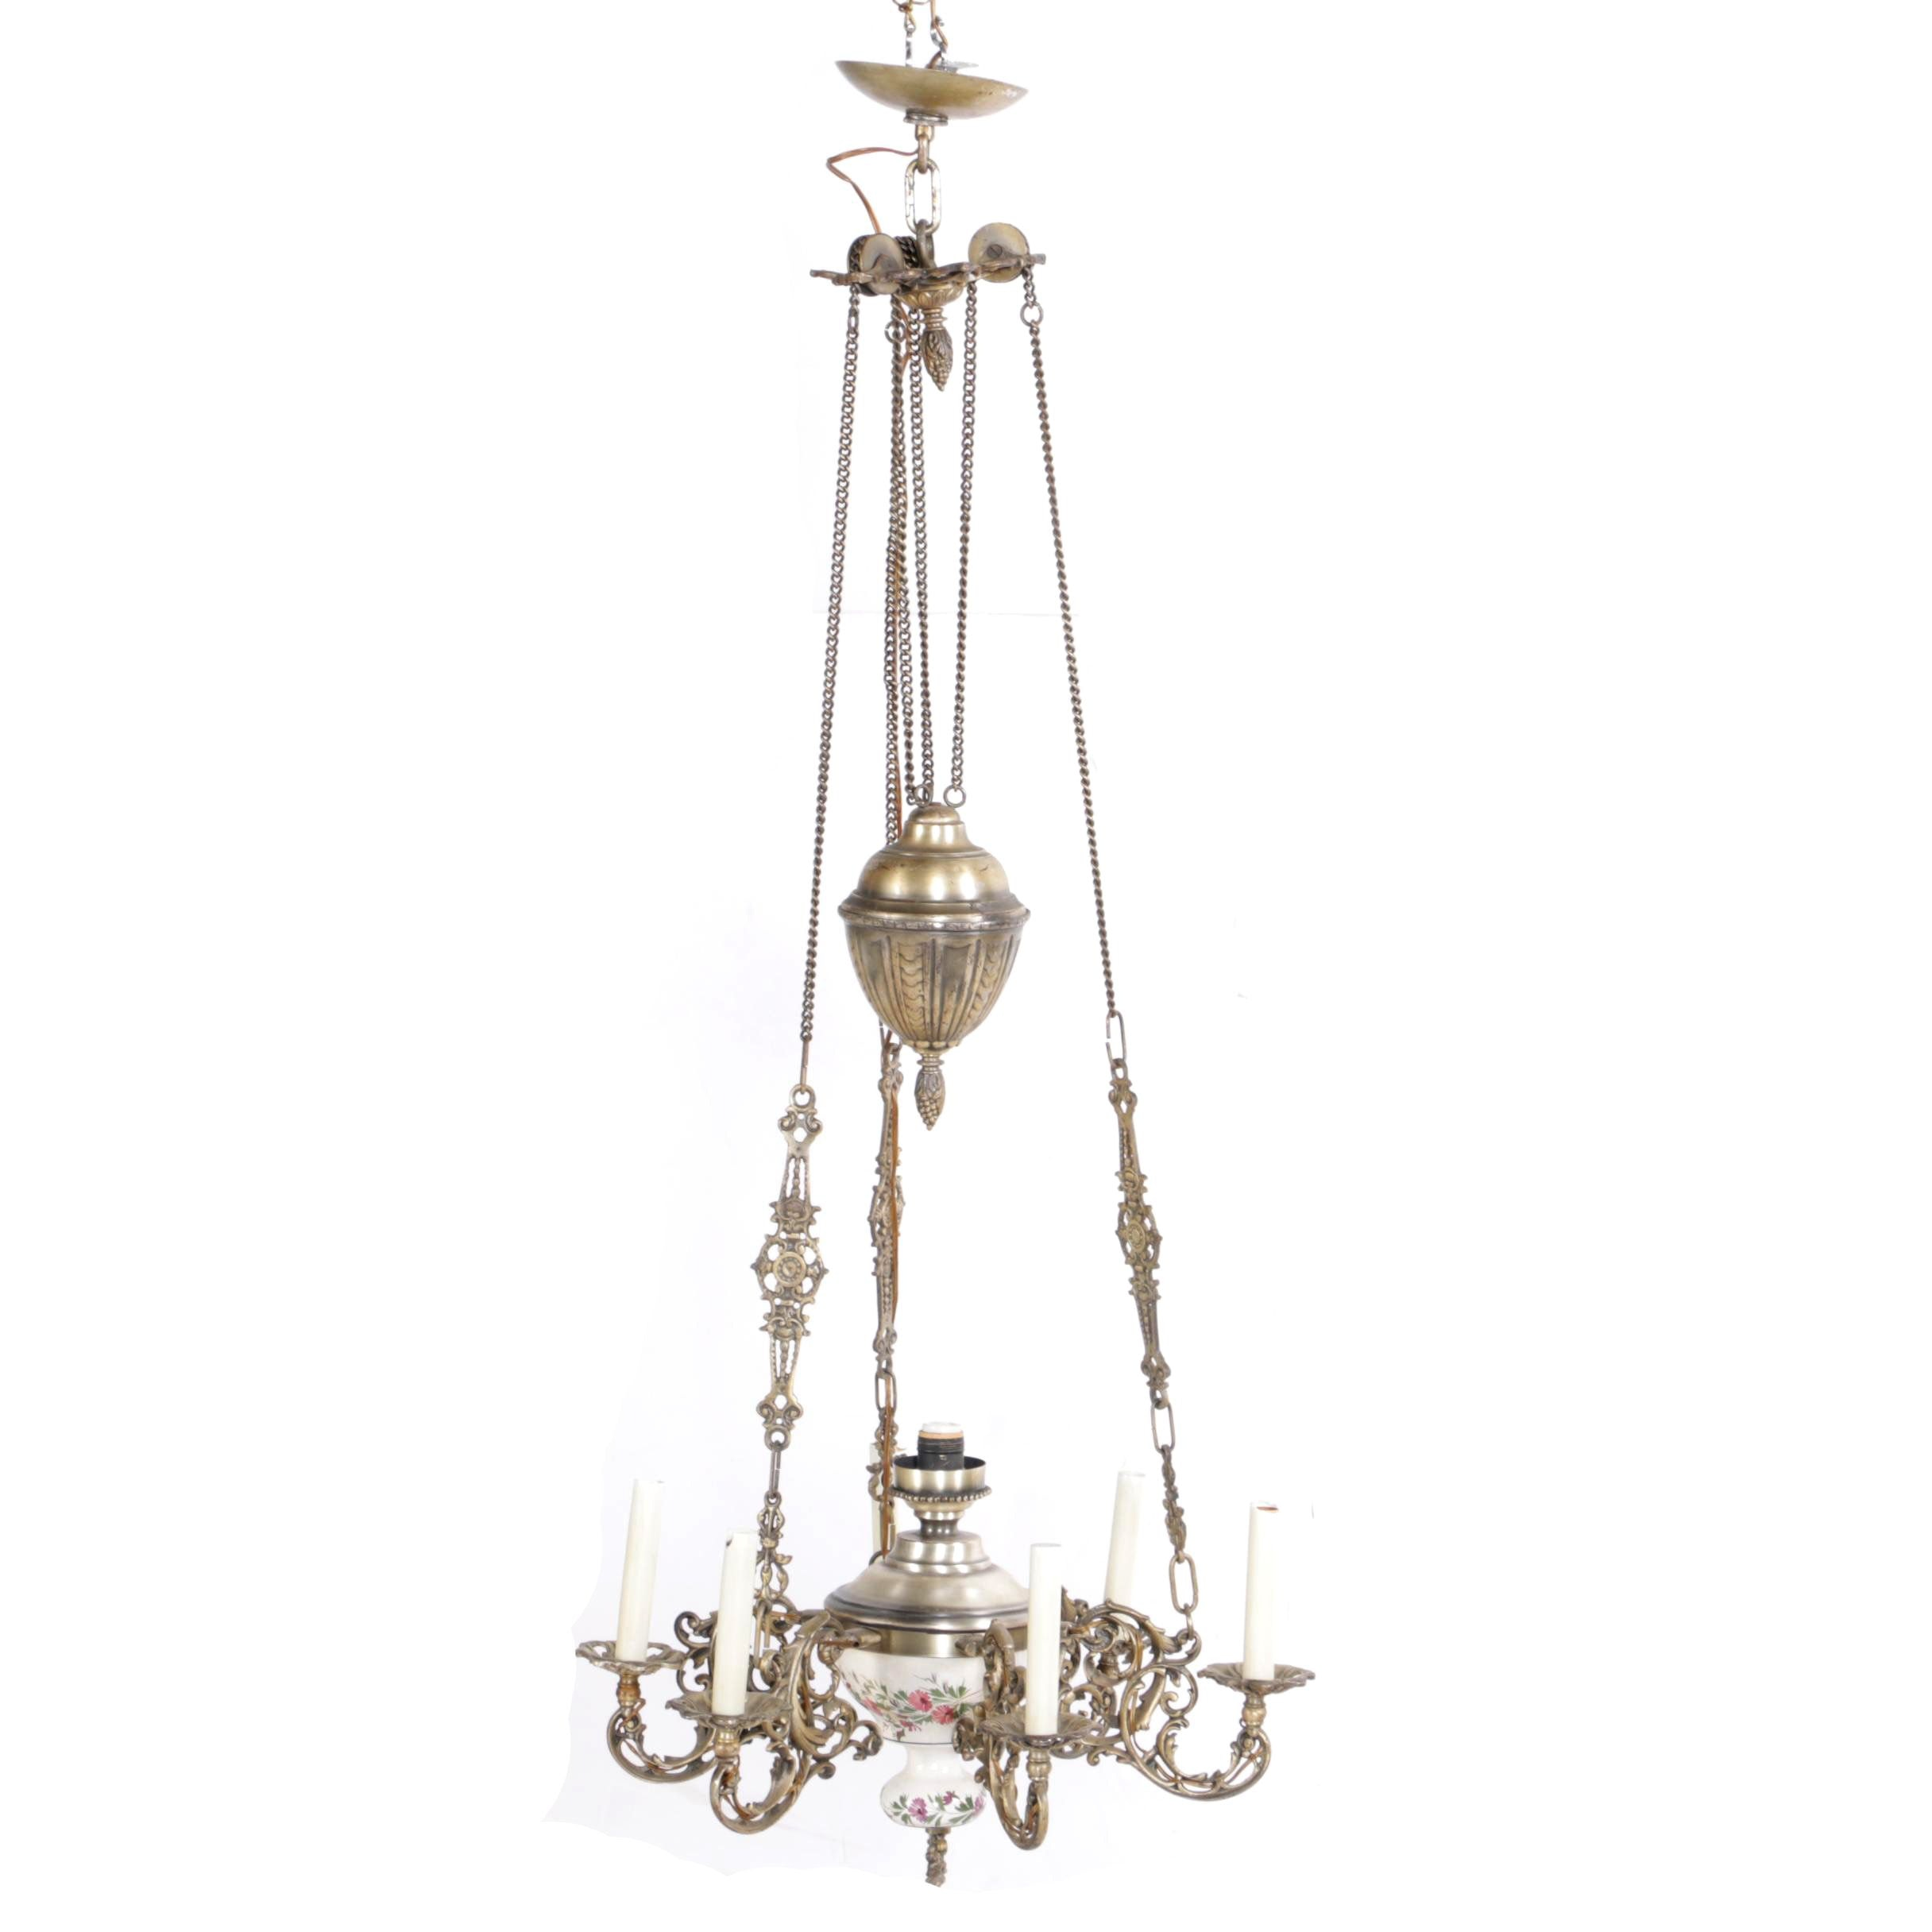 Brass and Ceramic Chandelier